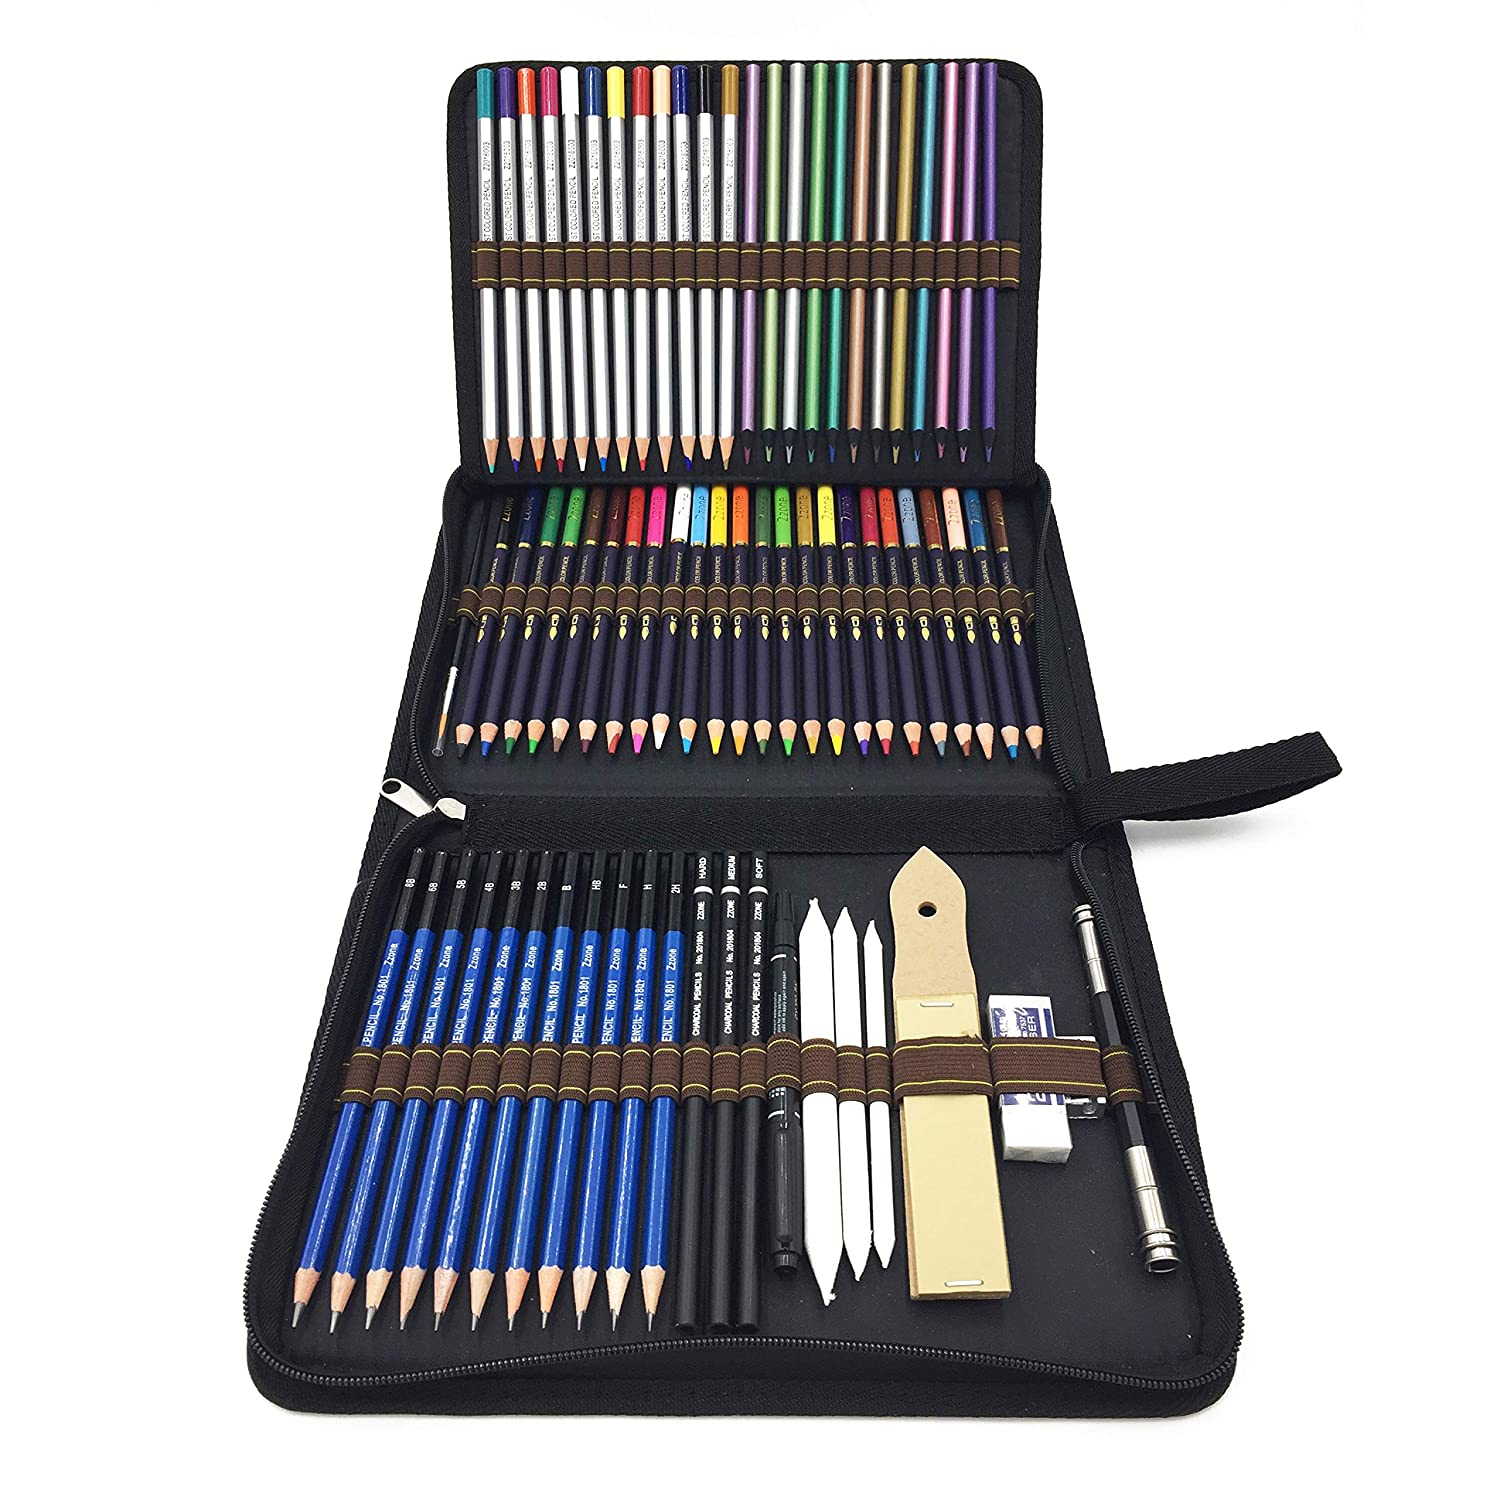 72 Piece Drawing Pencils, Colouring Pencils and Sketch Pencils Set with Drawing Tool in Pop Up Zipper Case - Ideal Gift for Beginners & Pro Artists Drawing Art, Sketching, Shading & Colouring TVGO